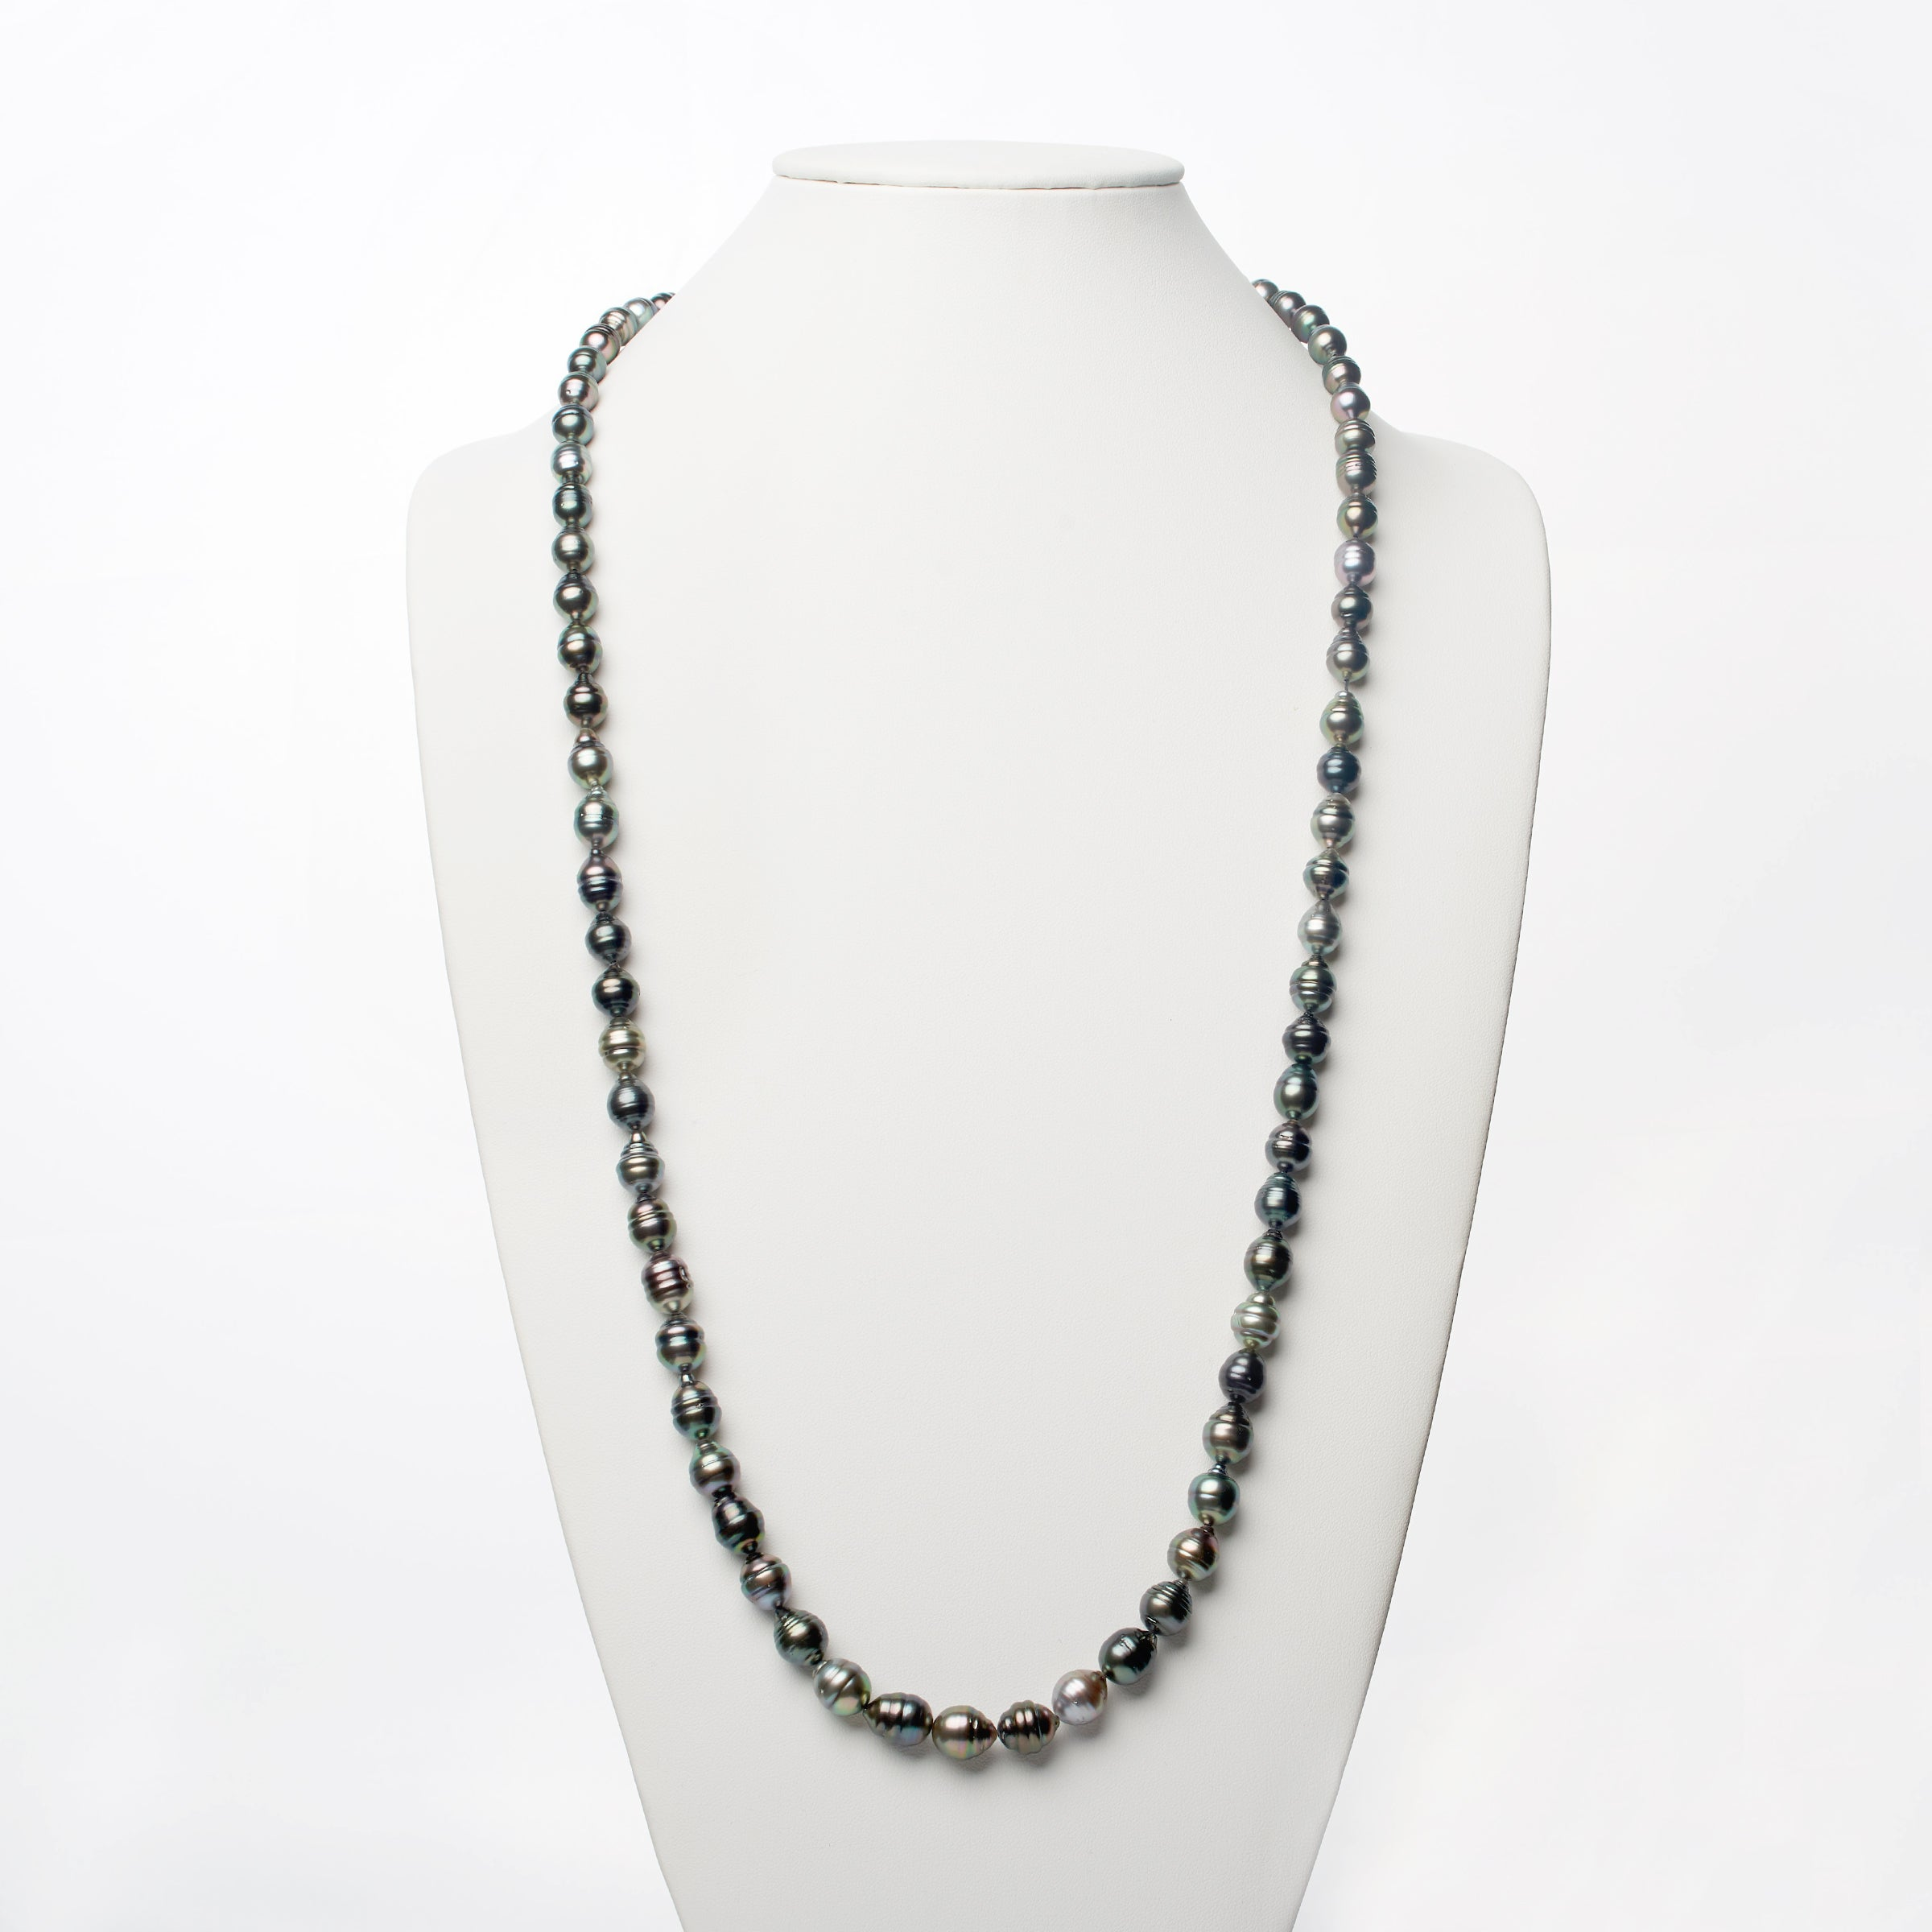 8.0-10.4 mm AA+/AAA Tahitian Baroque Pearl Necklace - 35 Inches